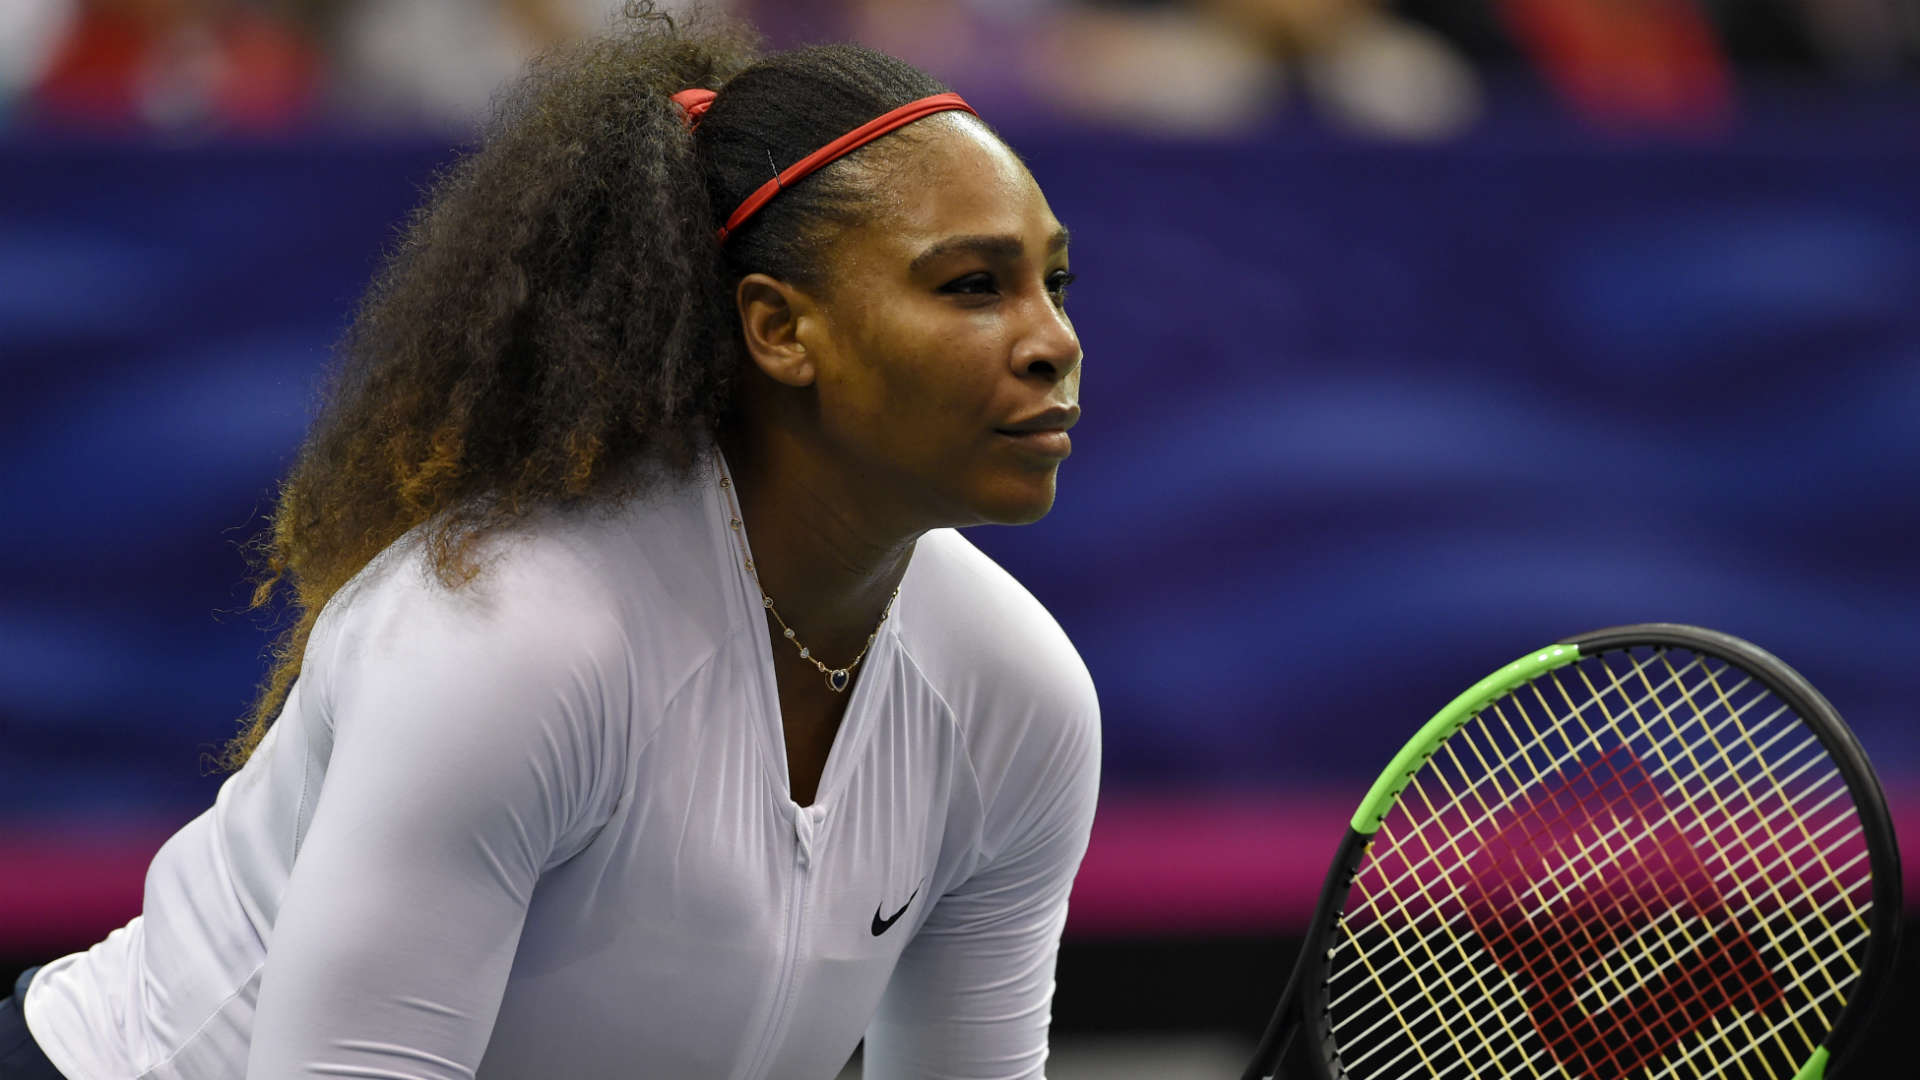 Chris Evert: Serena Williams Will Soon Pass Margaret Court's Grand Slam Record